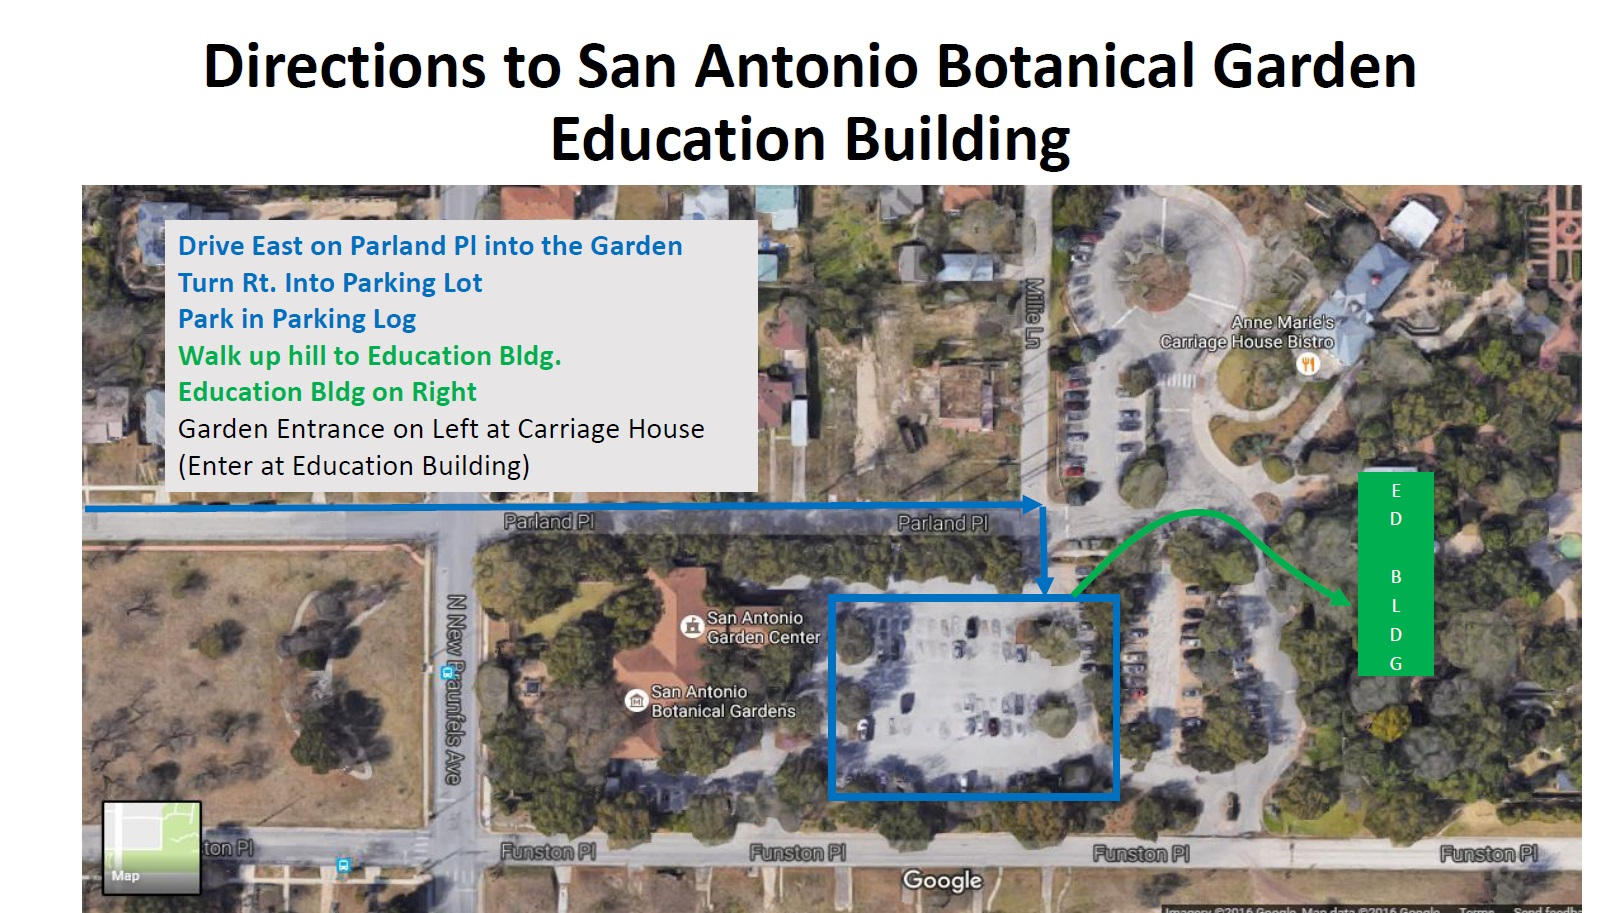 Directions to Education Building